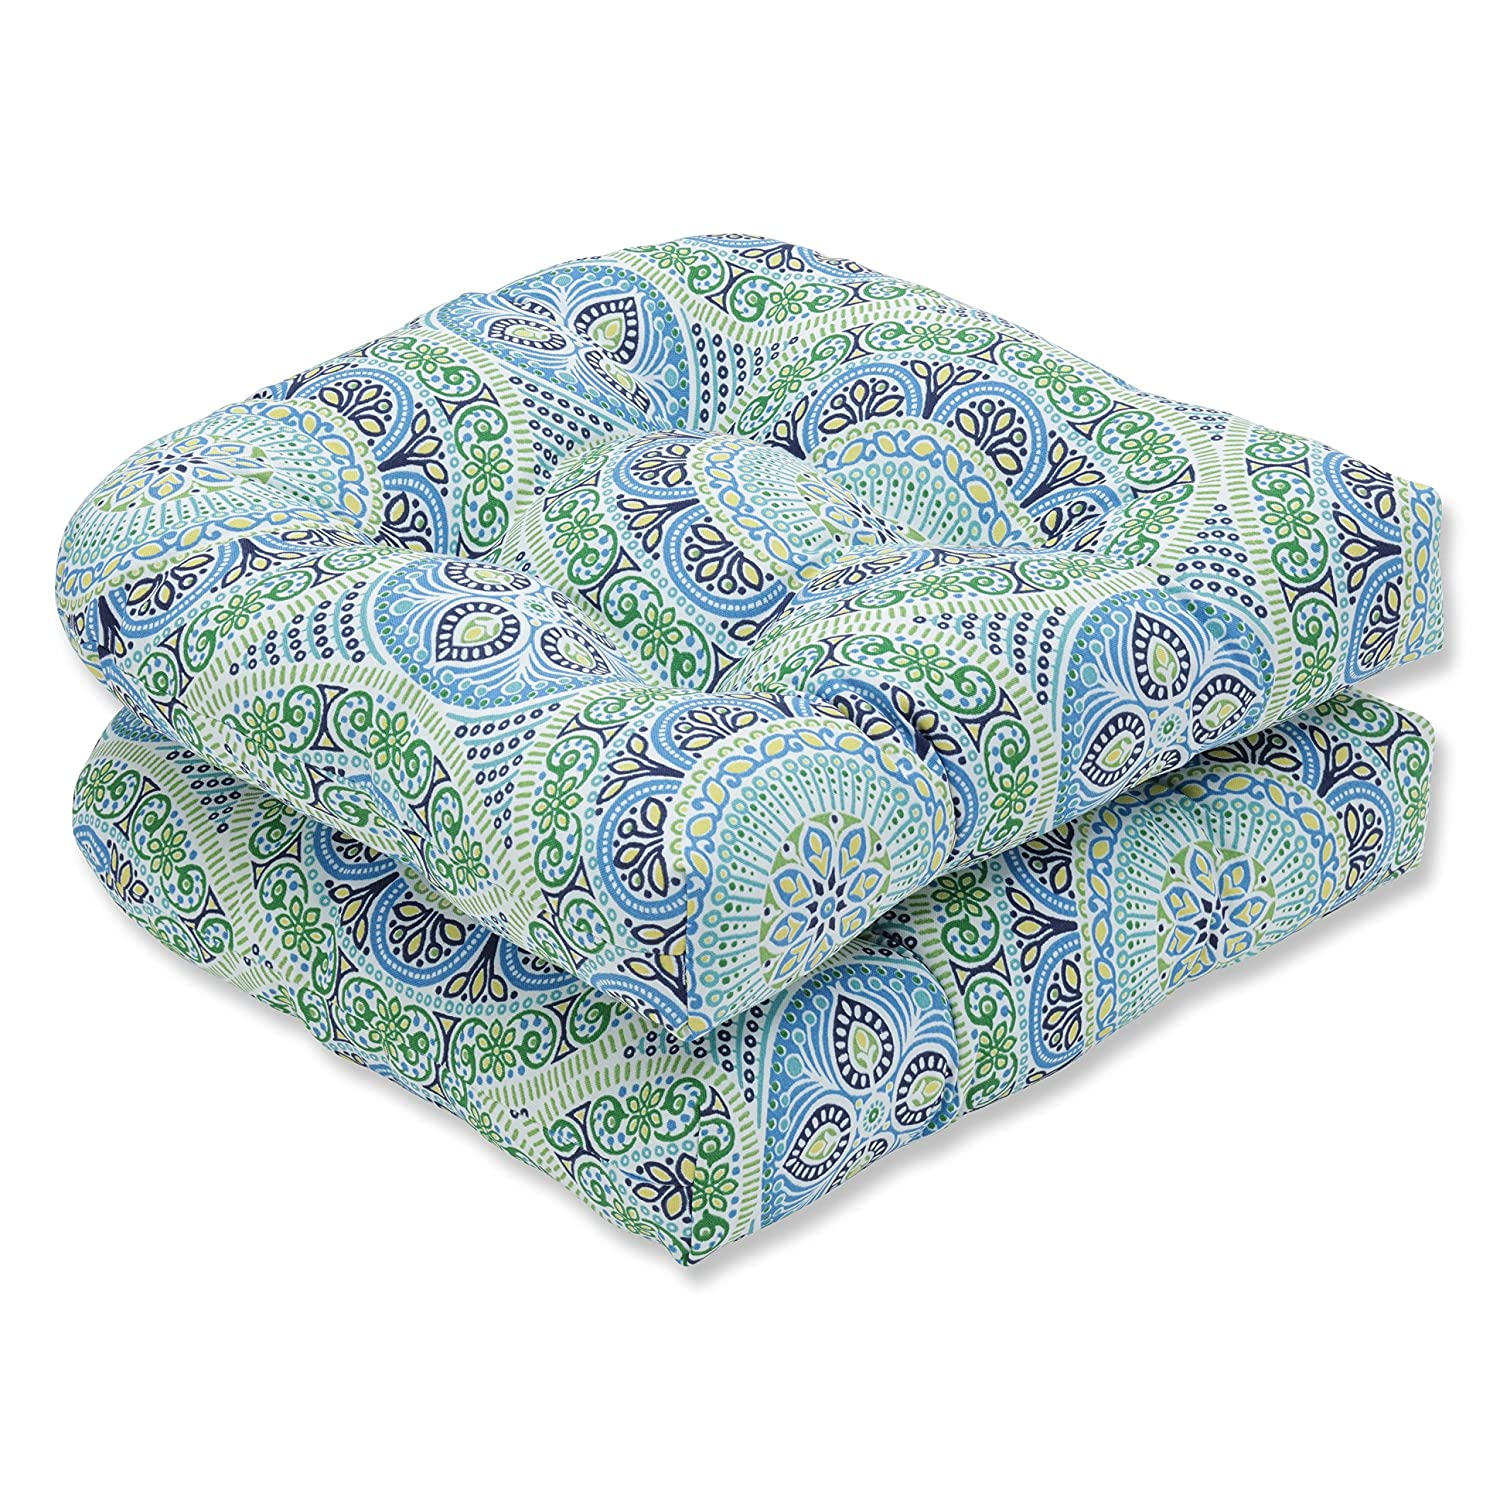 Pillow Perfect Outdoor Indoor Delancey Lagoon Wicker Seat Cushion Set of 2 , 2 Piece